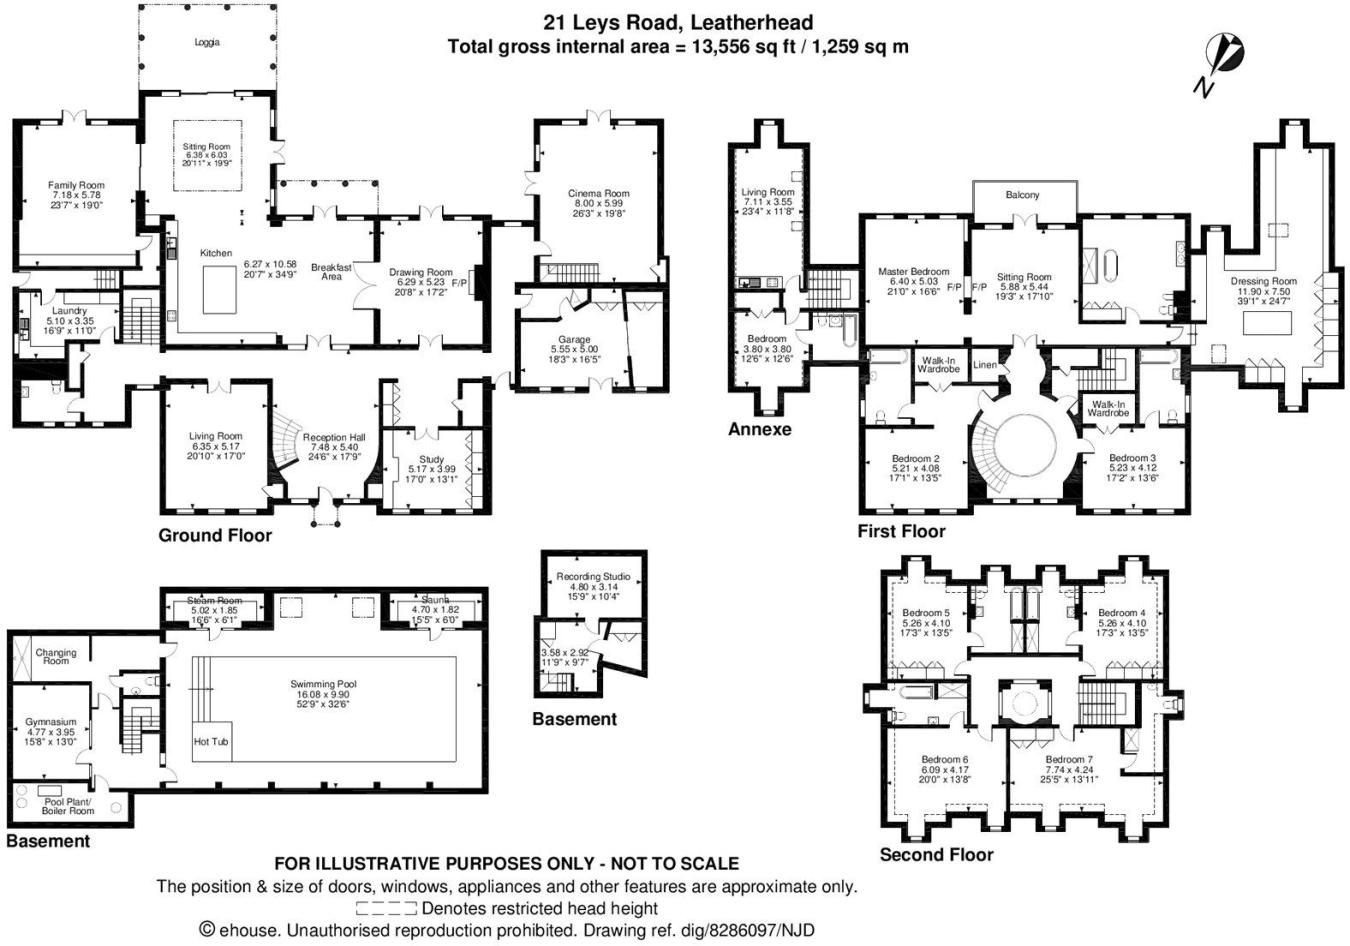 13 500 Square Foot English Estate Home Floor Plans For All Levels Address 21 Leys Rd Leatherhead House Plans House Floor Plans Modern House Plans